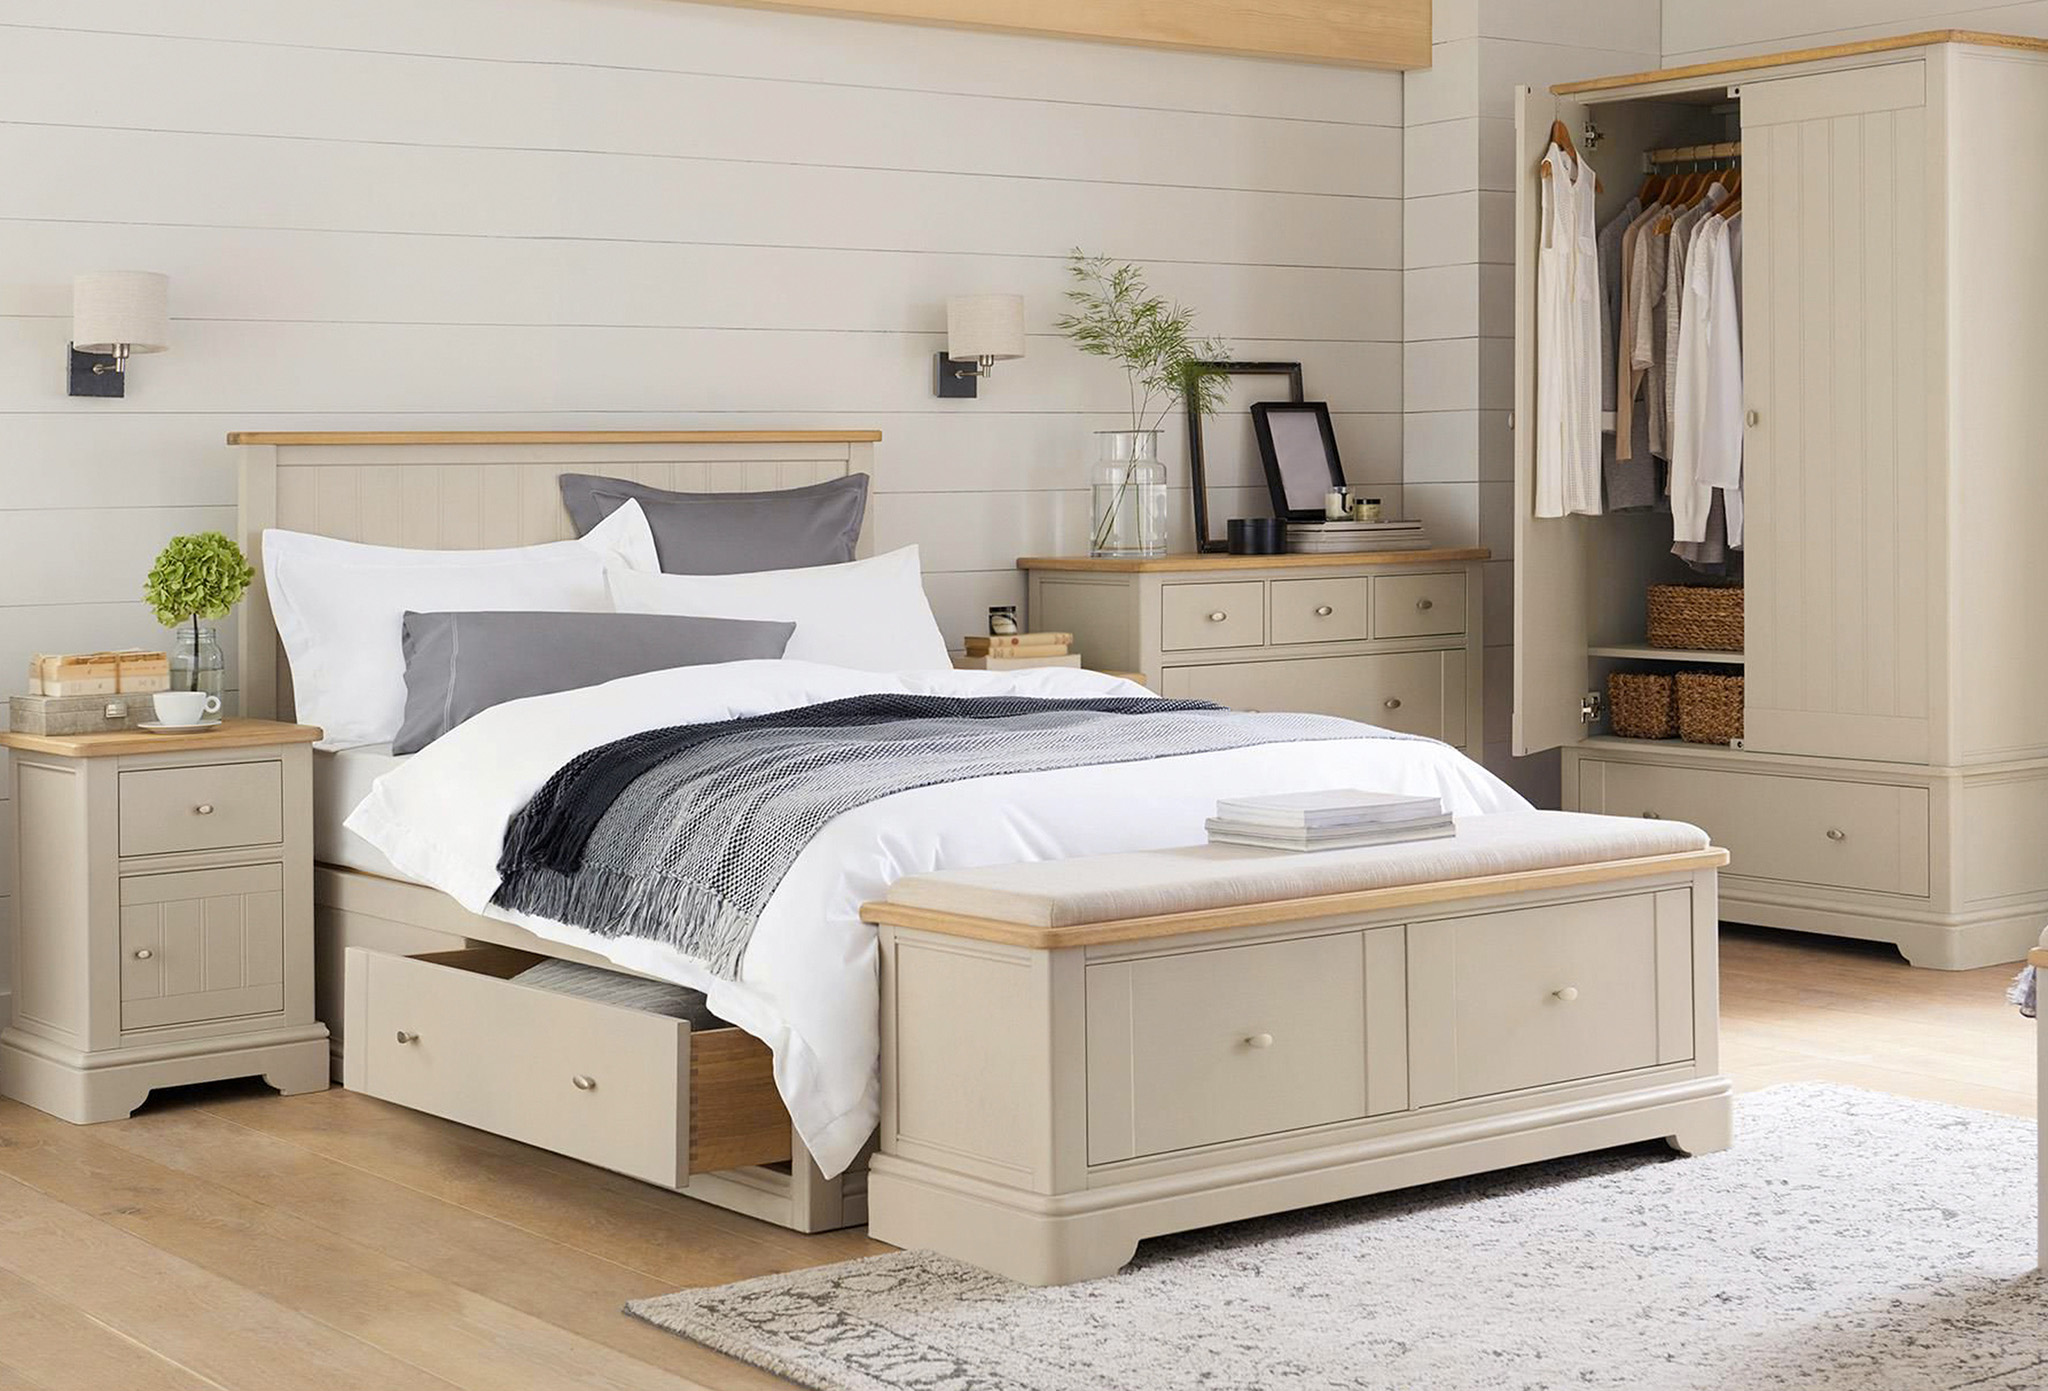 bedroom furniture, wardrobe with drawers, bedside table